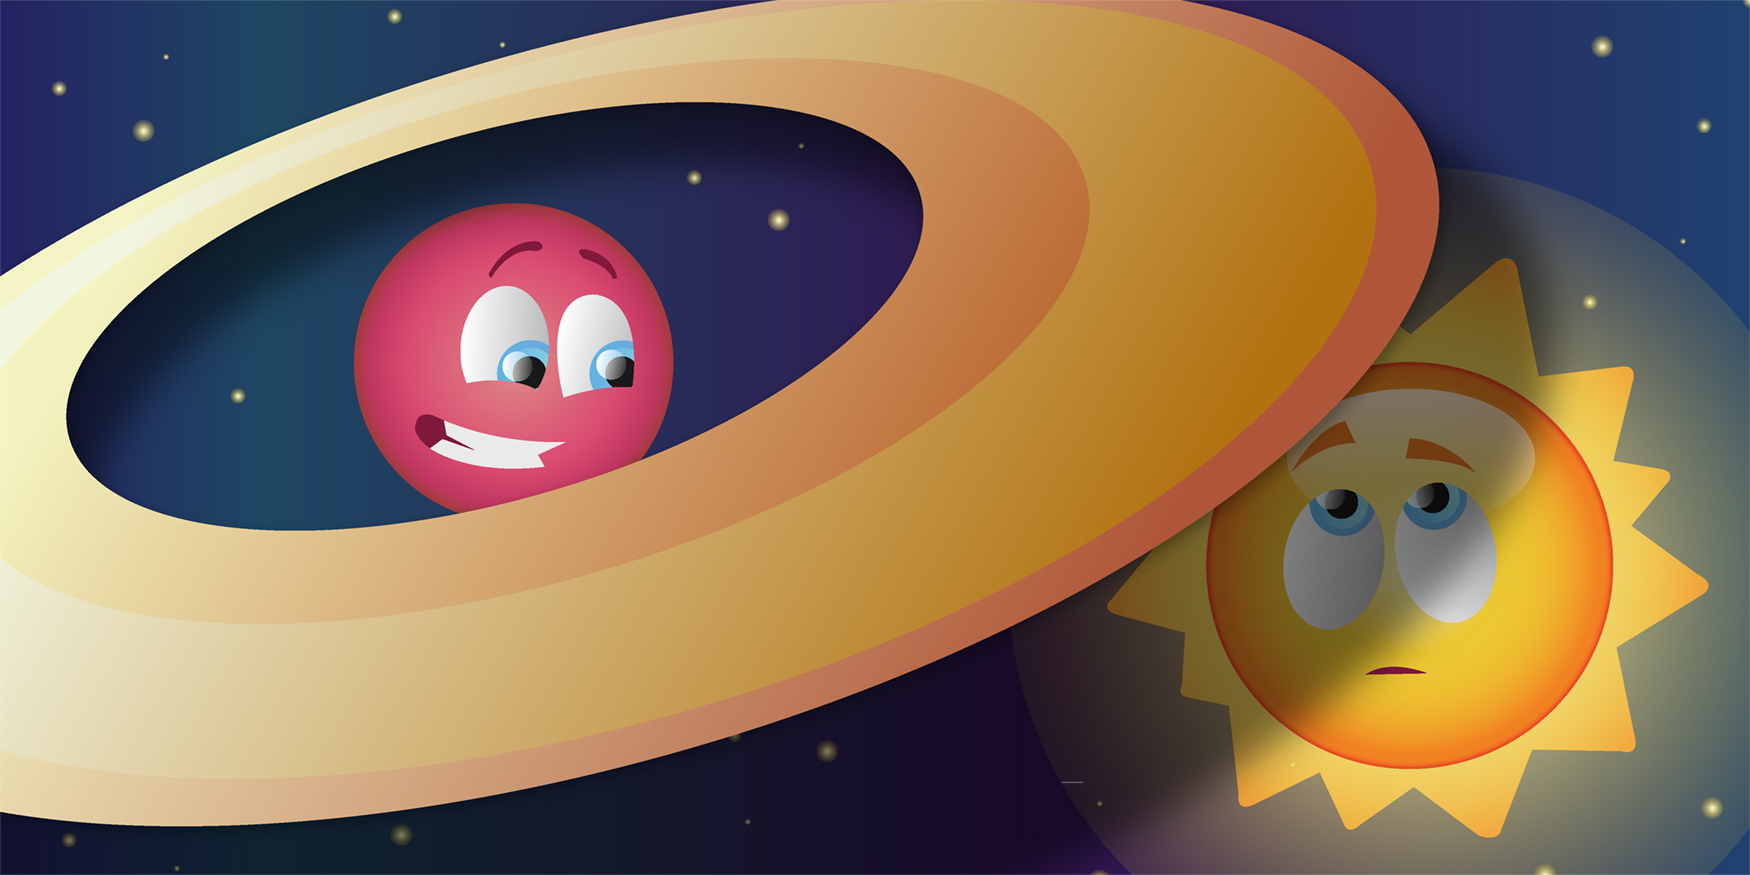 And science articles frontiers. Astronomy clipart space scientist